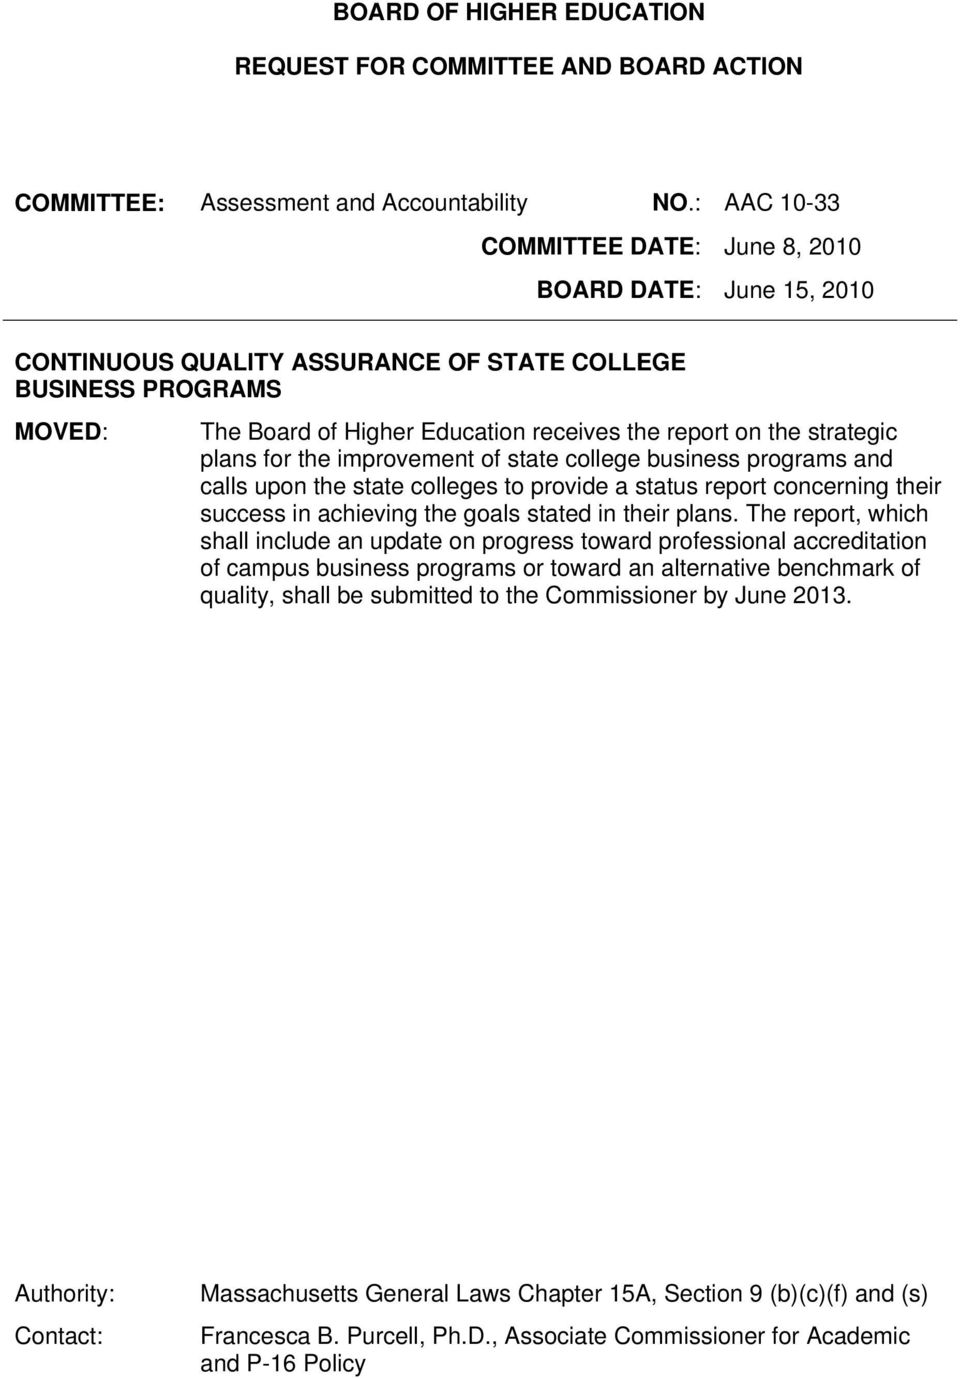 strategic plans for the improvement of state college business programs and calls upon the state colleges to provide a status report concerning their success in achieving the goals stated in their